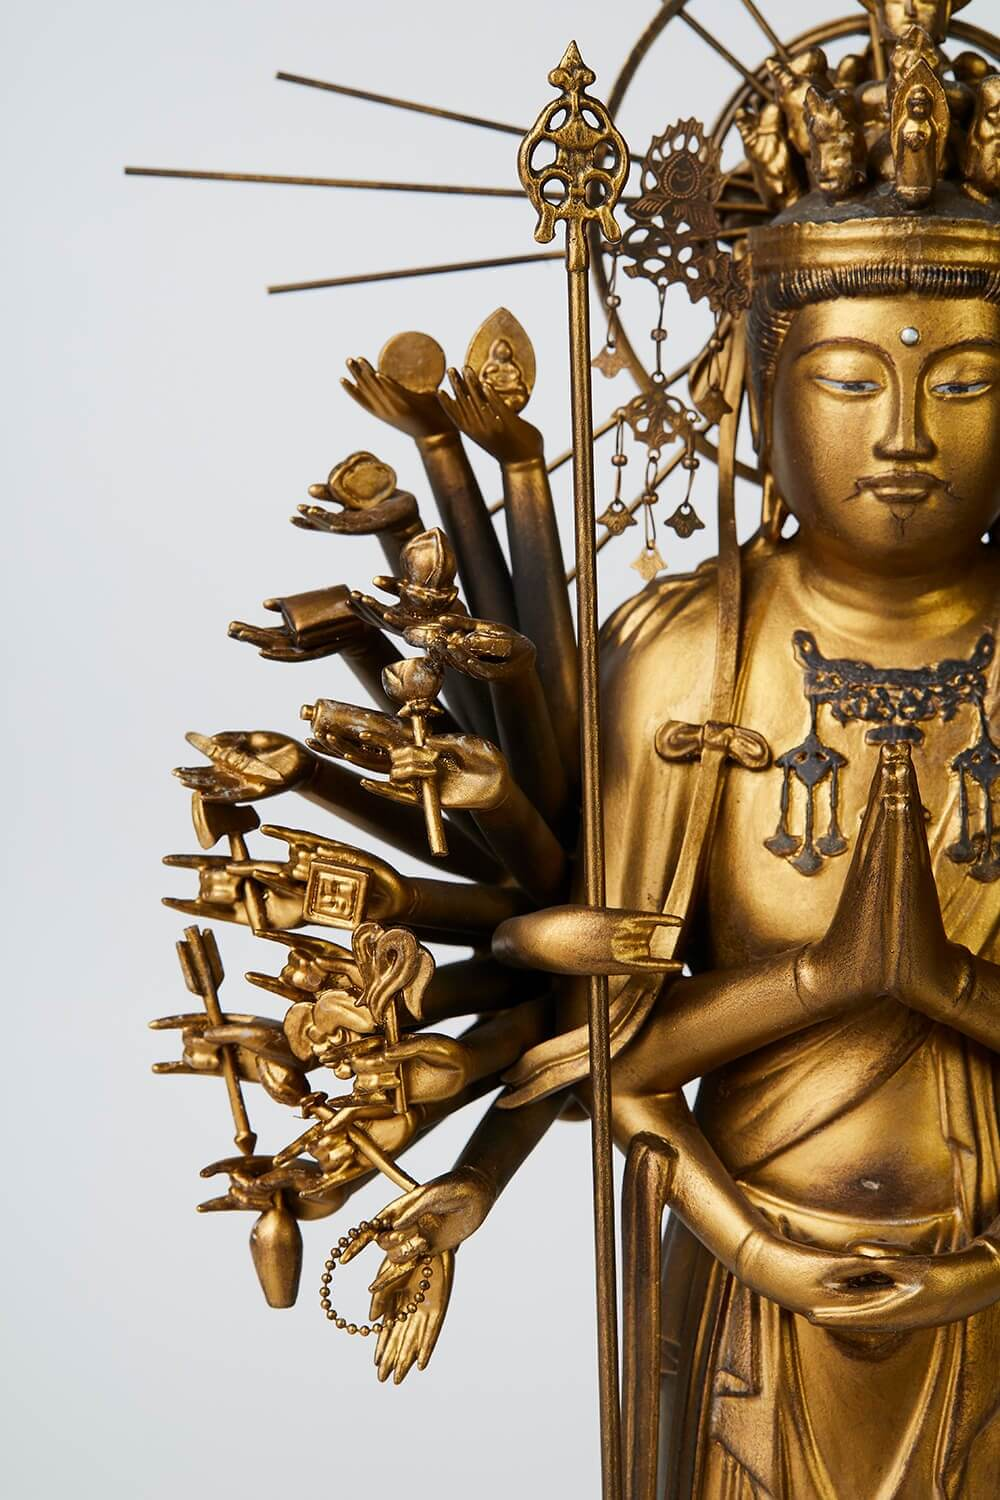 Japan's Ultimate Buddhist Artwork: The Thousand-Armed Kannon, replicated buddha statue product details